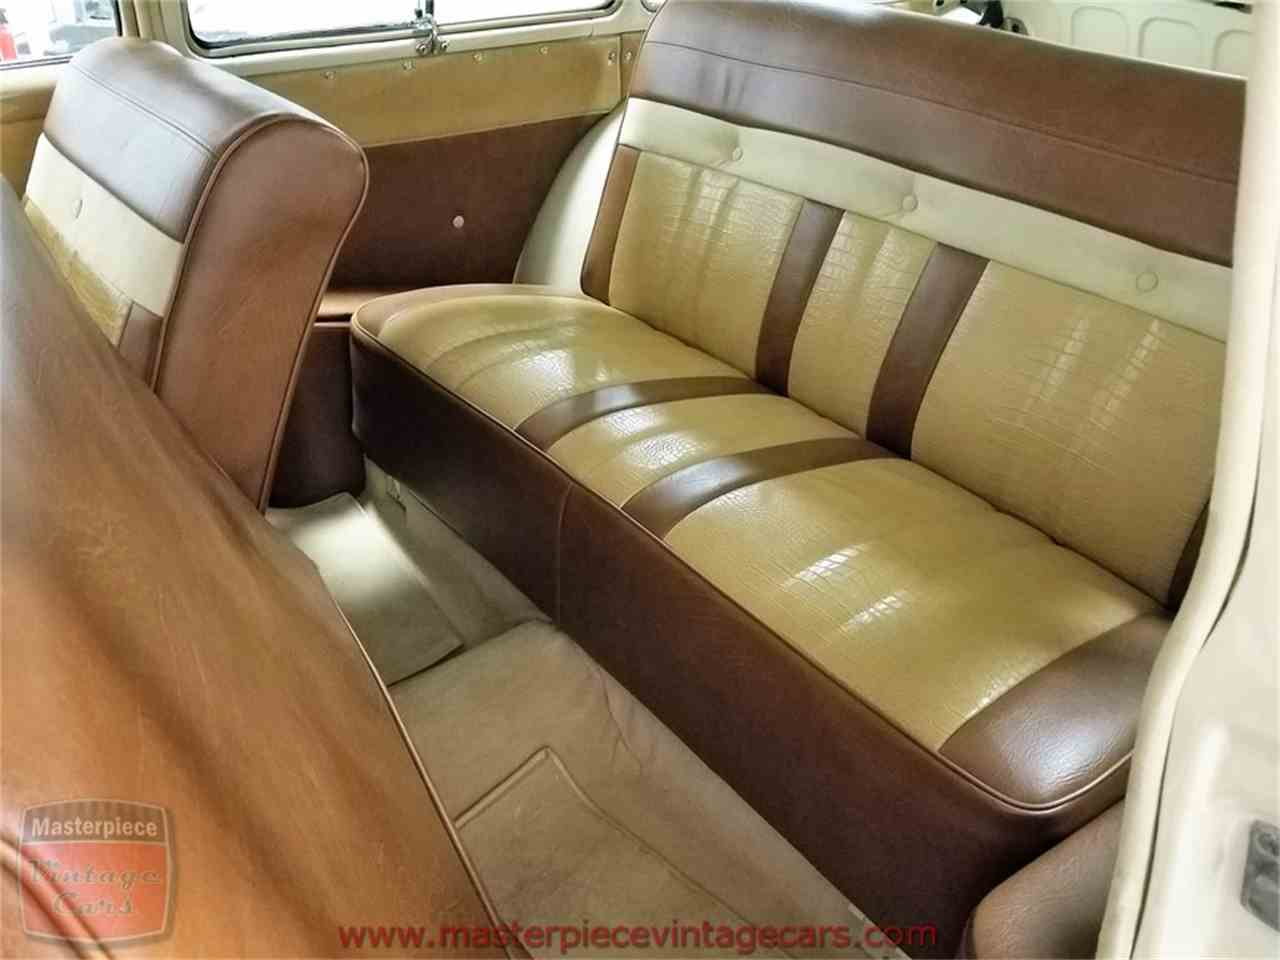 Large Picture of Classic 1954 Plaza Suburban located in Whiteland Indiana Offered by Masterpiece Vintage Cars - KV49